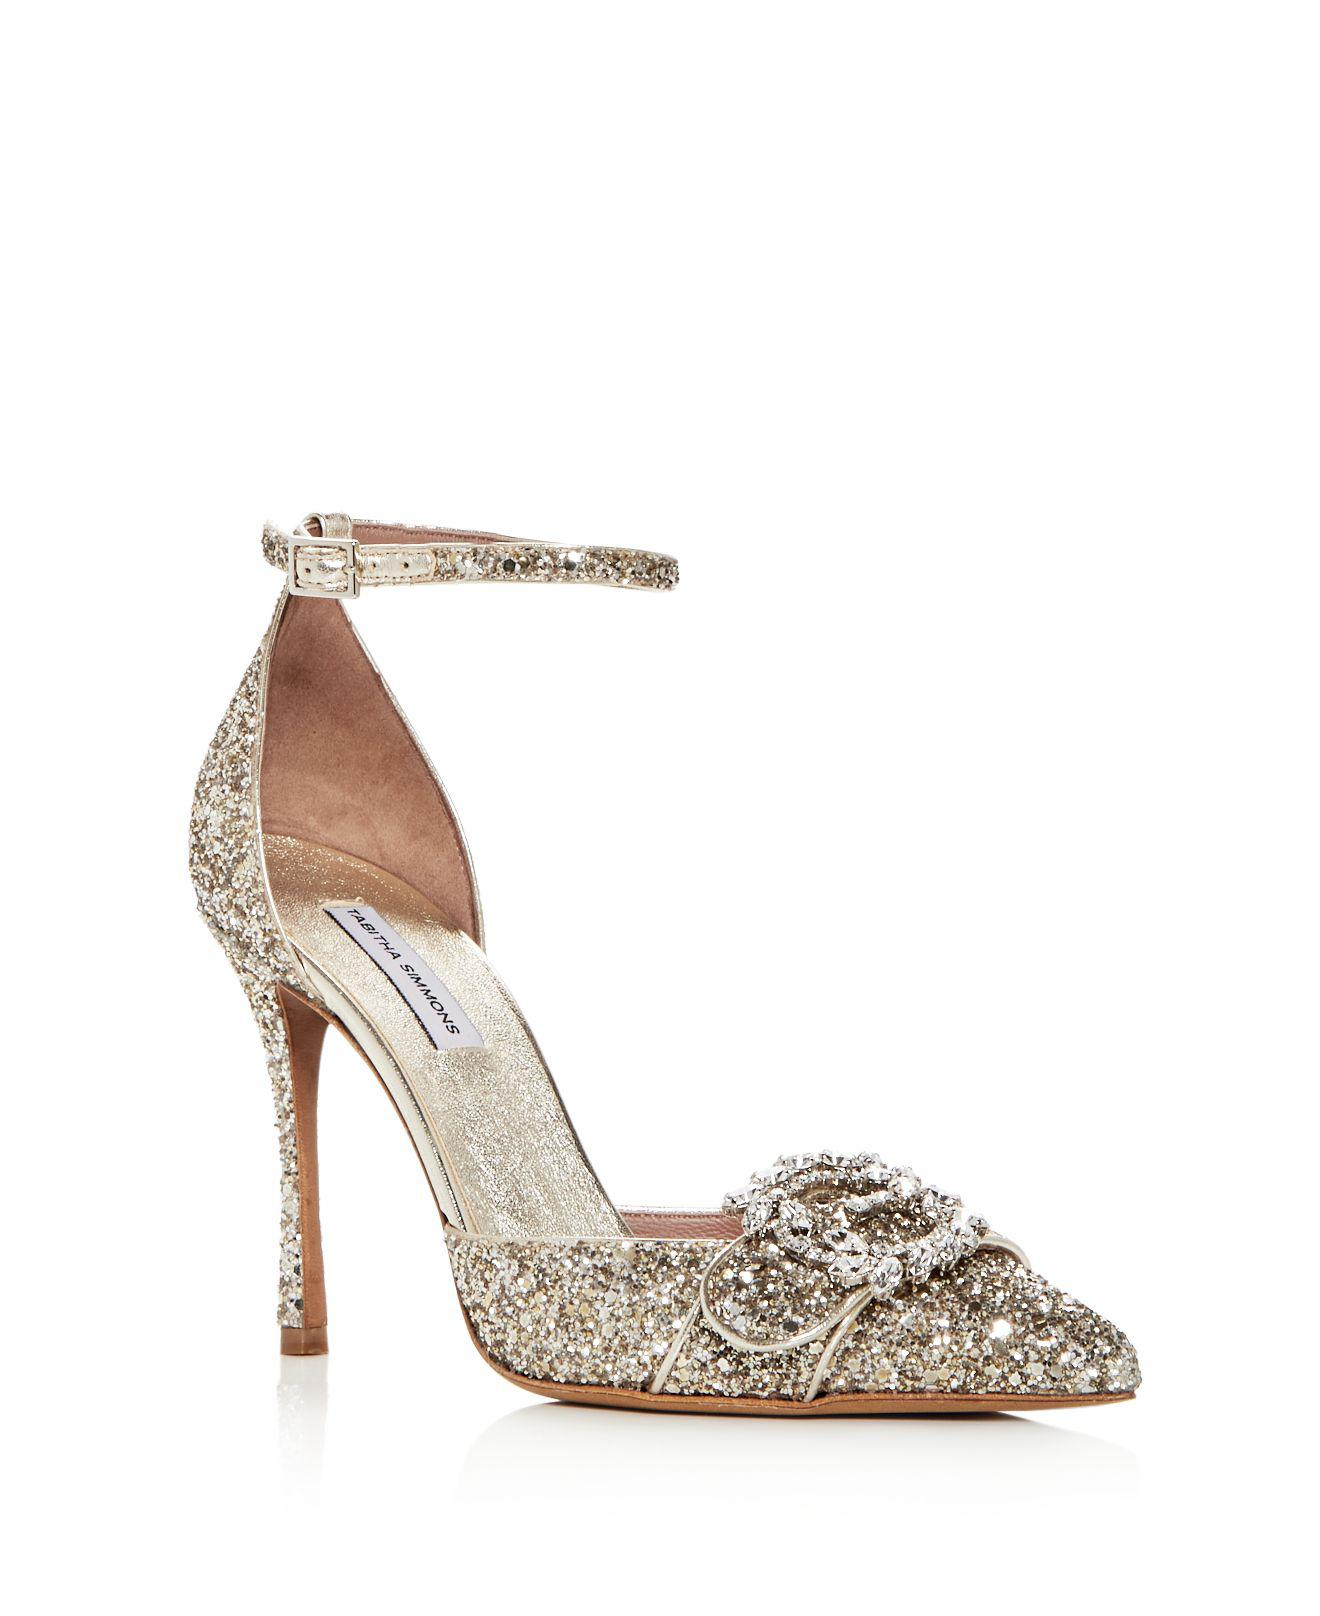 Tabitha Simmons Embellished Peep-Toe Pumps buy cheap excellent sneakernews ER97MpN5